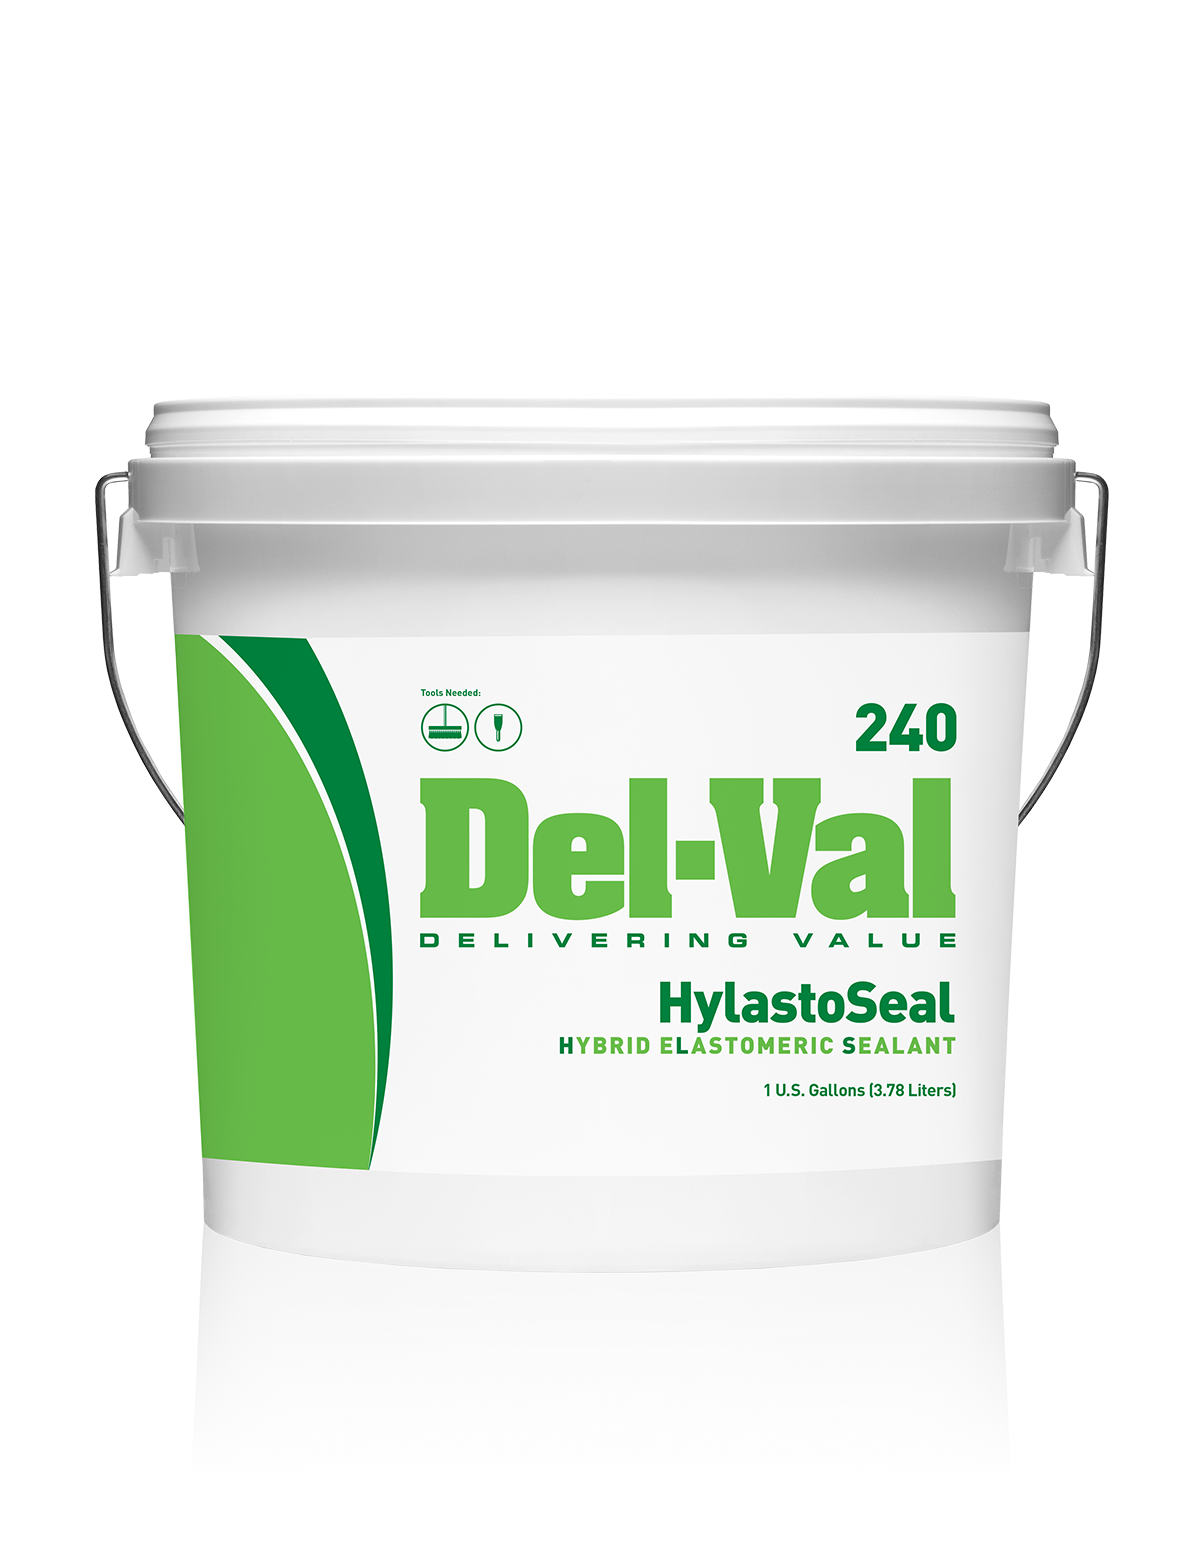 Del-Val 240 3 Gallon Plastic Bucket